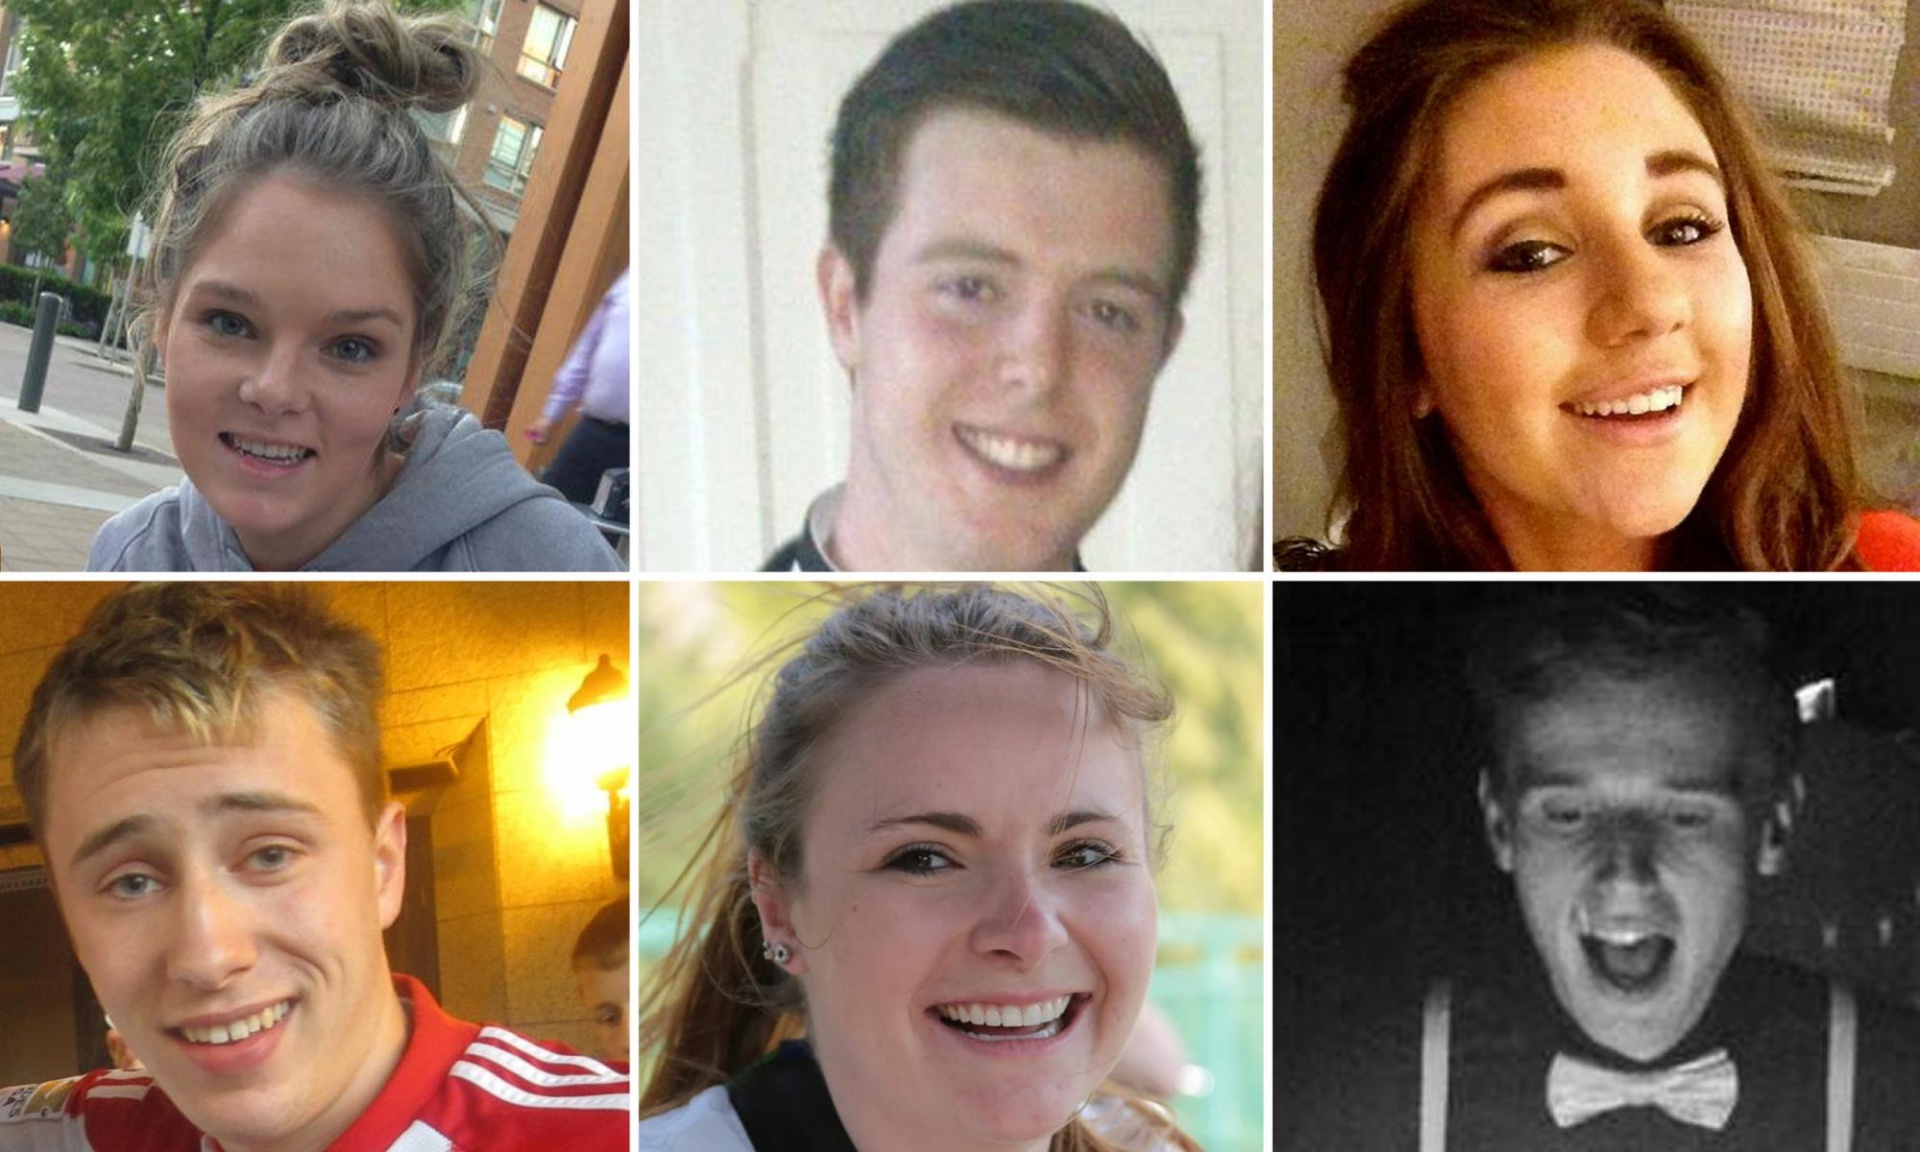 Olivia Burke, 21; Eoghan Culligan, 21; Niccolai Schuster, 21; Lorcán Miller, 21; and 21-year-old Eimear Walsh – all Irish citizens studying at the University of California on J1 visas – and Ashley Donohoe, 22, from Rohnert Park, California. Olive Burke and Ashley Donohoe were first cousins